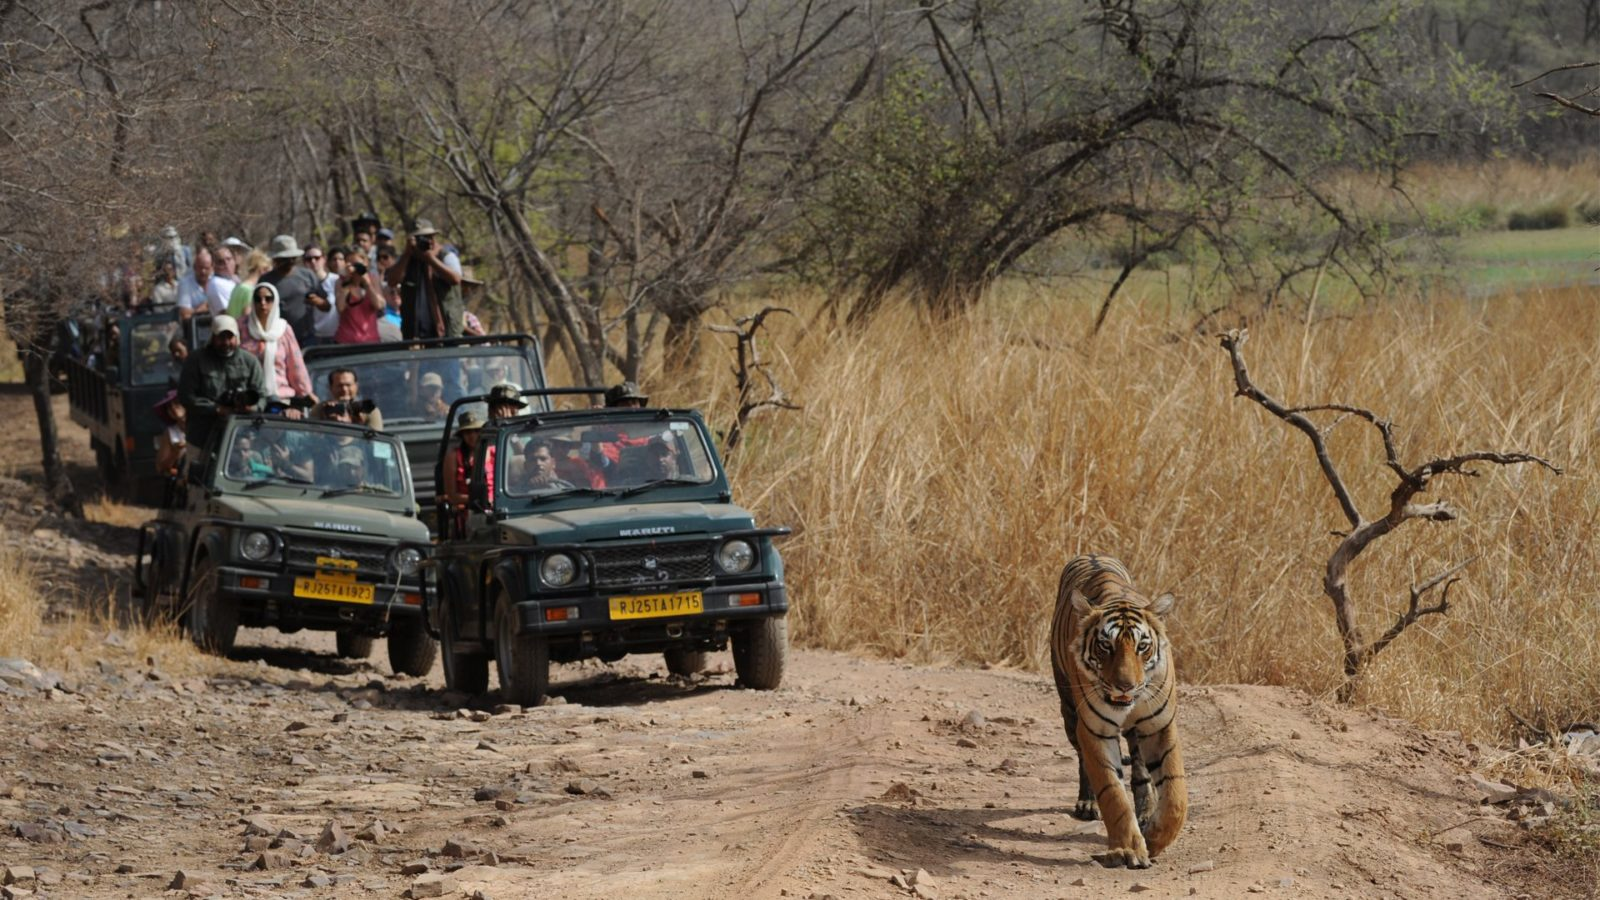 RAJAST5HAN PACKAGE  AT RANTHAMBHORE